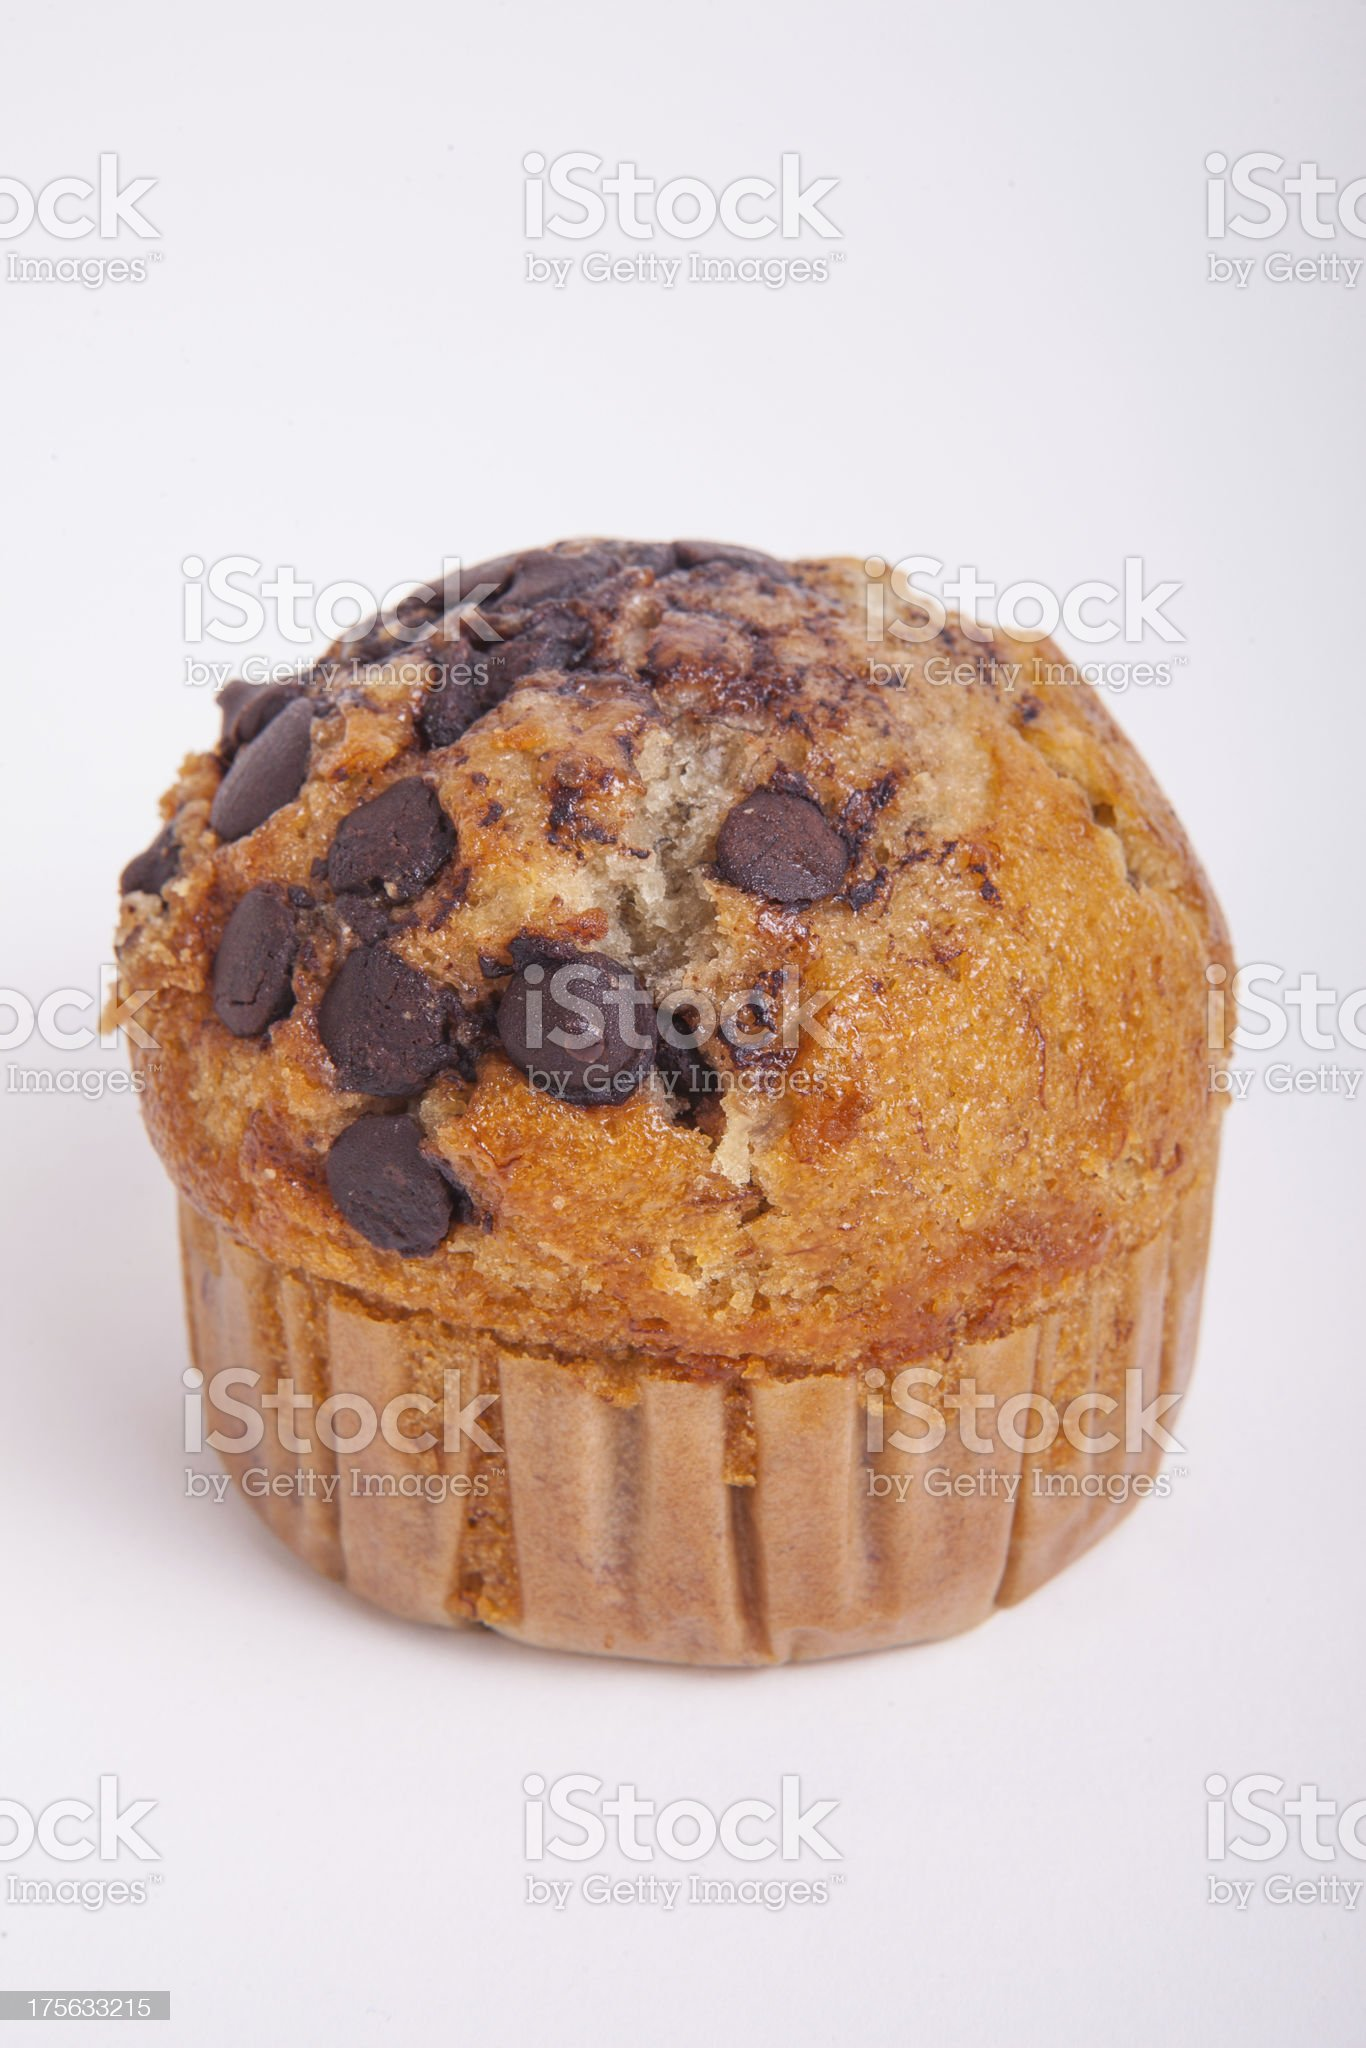 Chocolate chip muffin isolated royalty-free stock photo